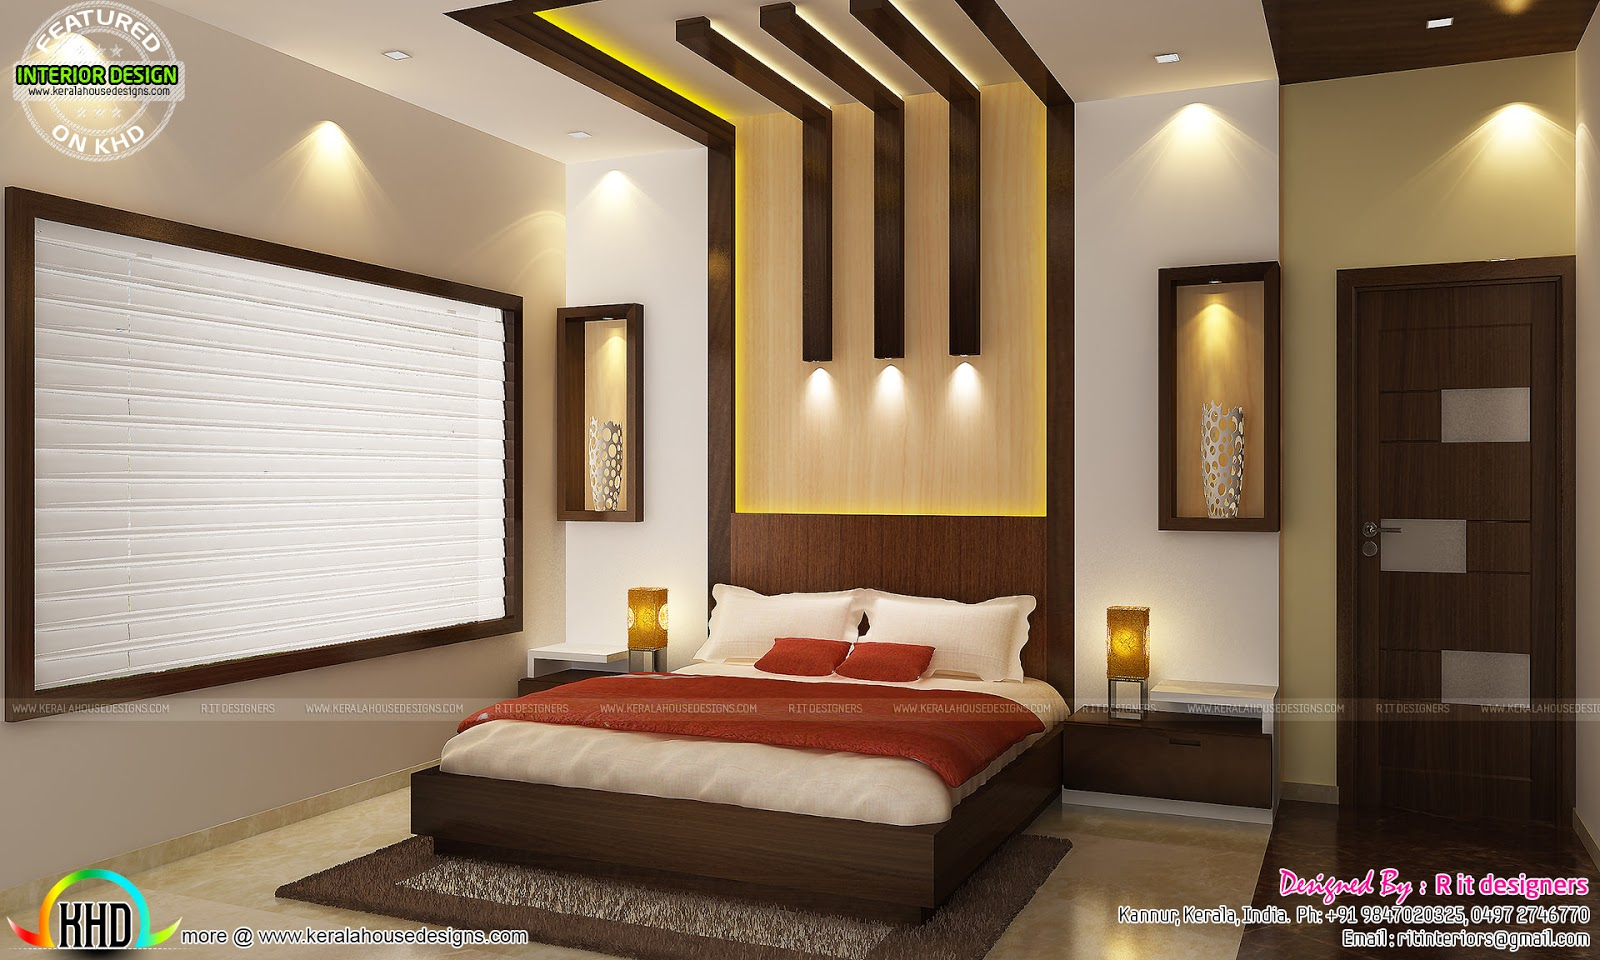 Kitchen living bedroom dining interior decor kerala for Interior design bedroom small room